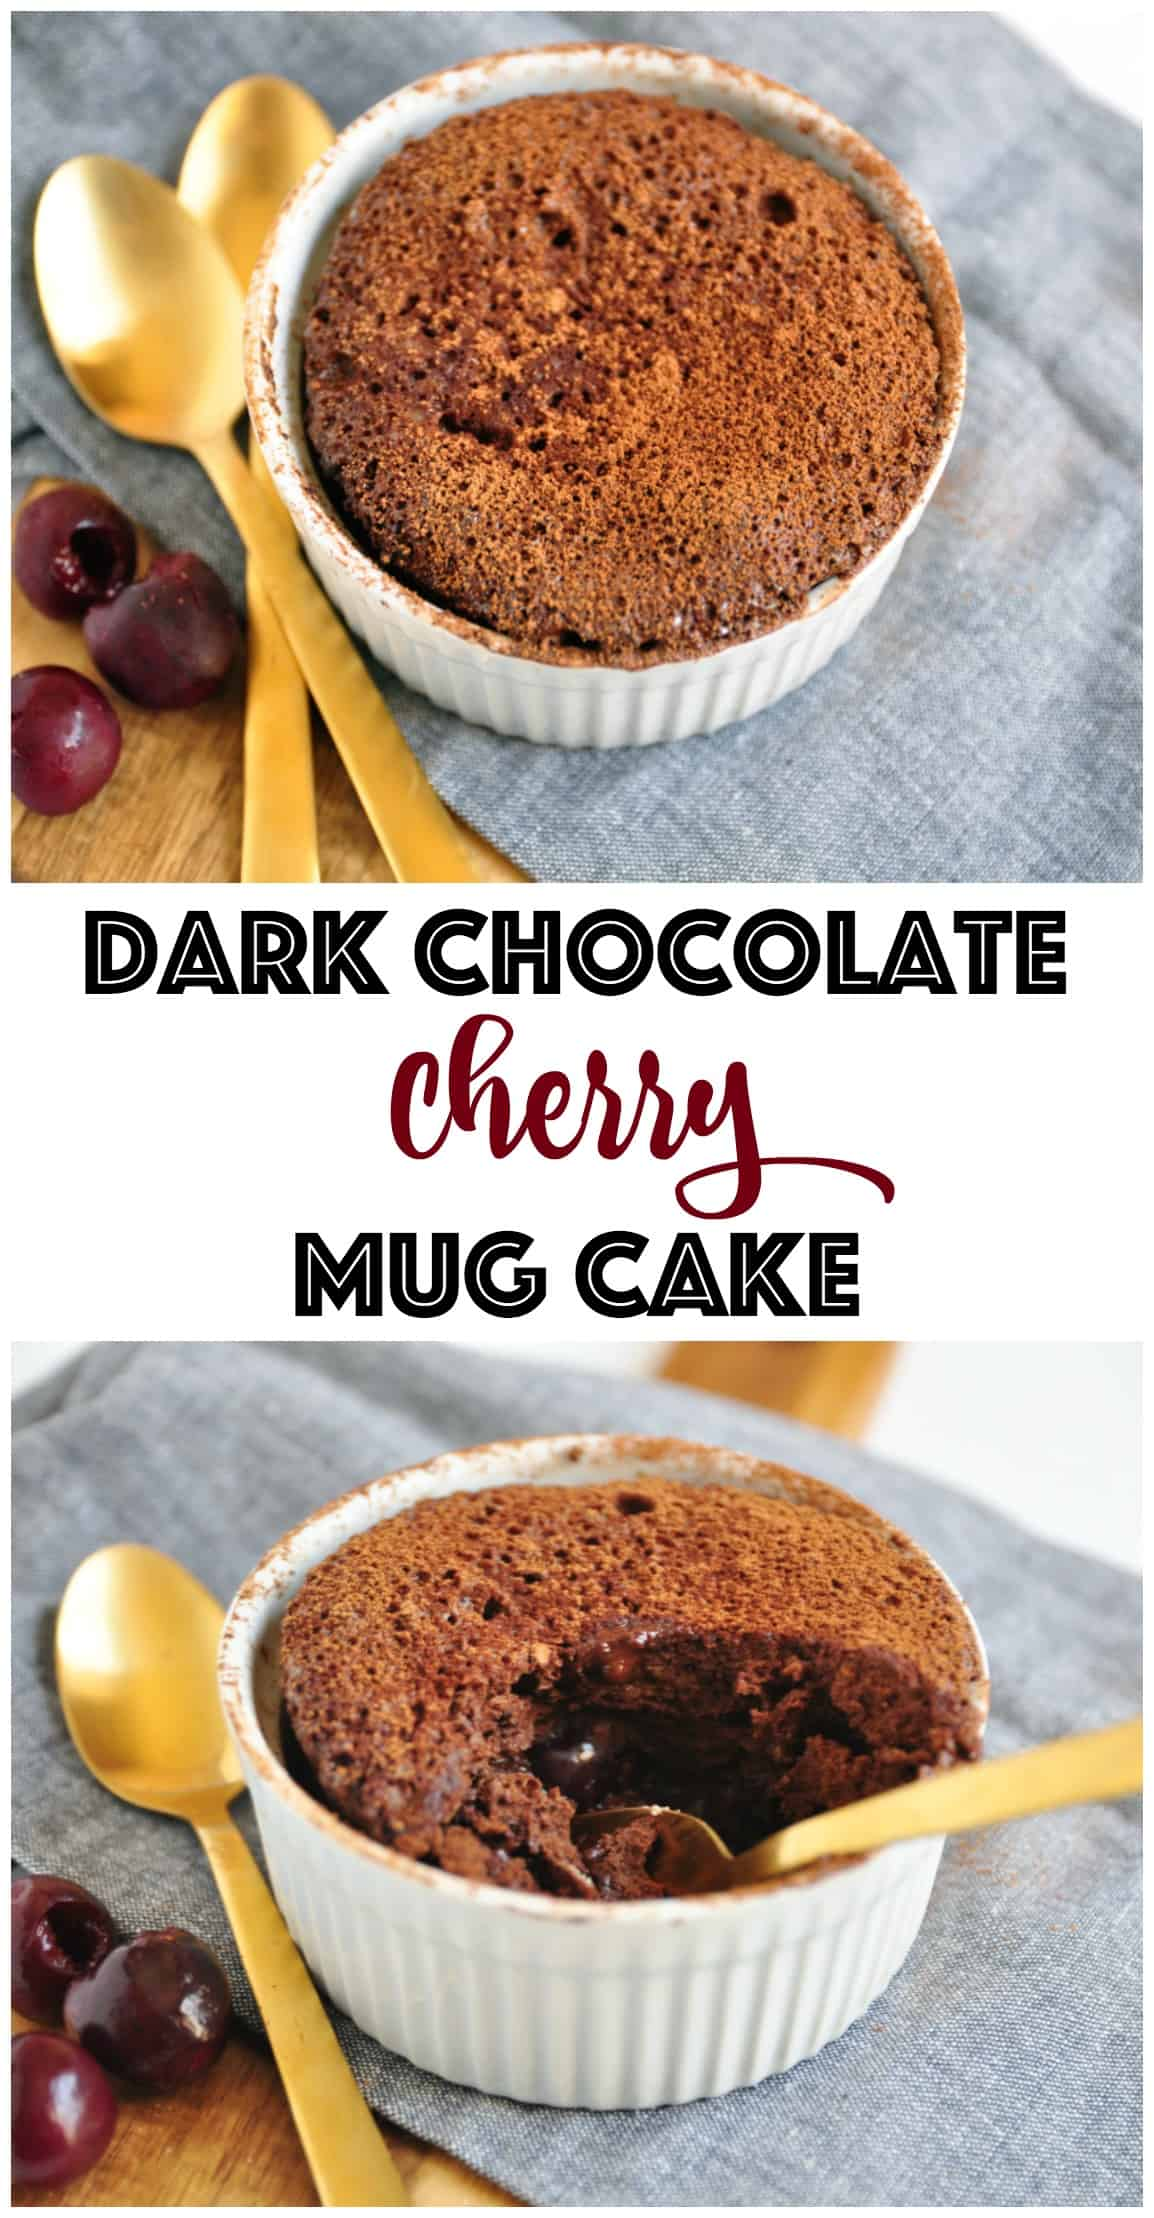 Dark Chocolate Cherry Mug Cake. Be Whole. Be You.